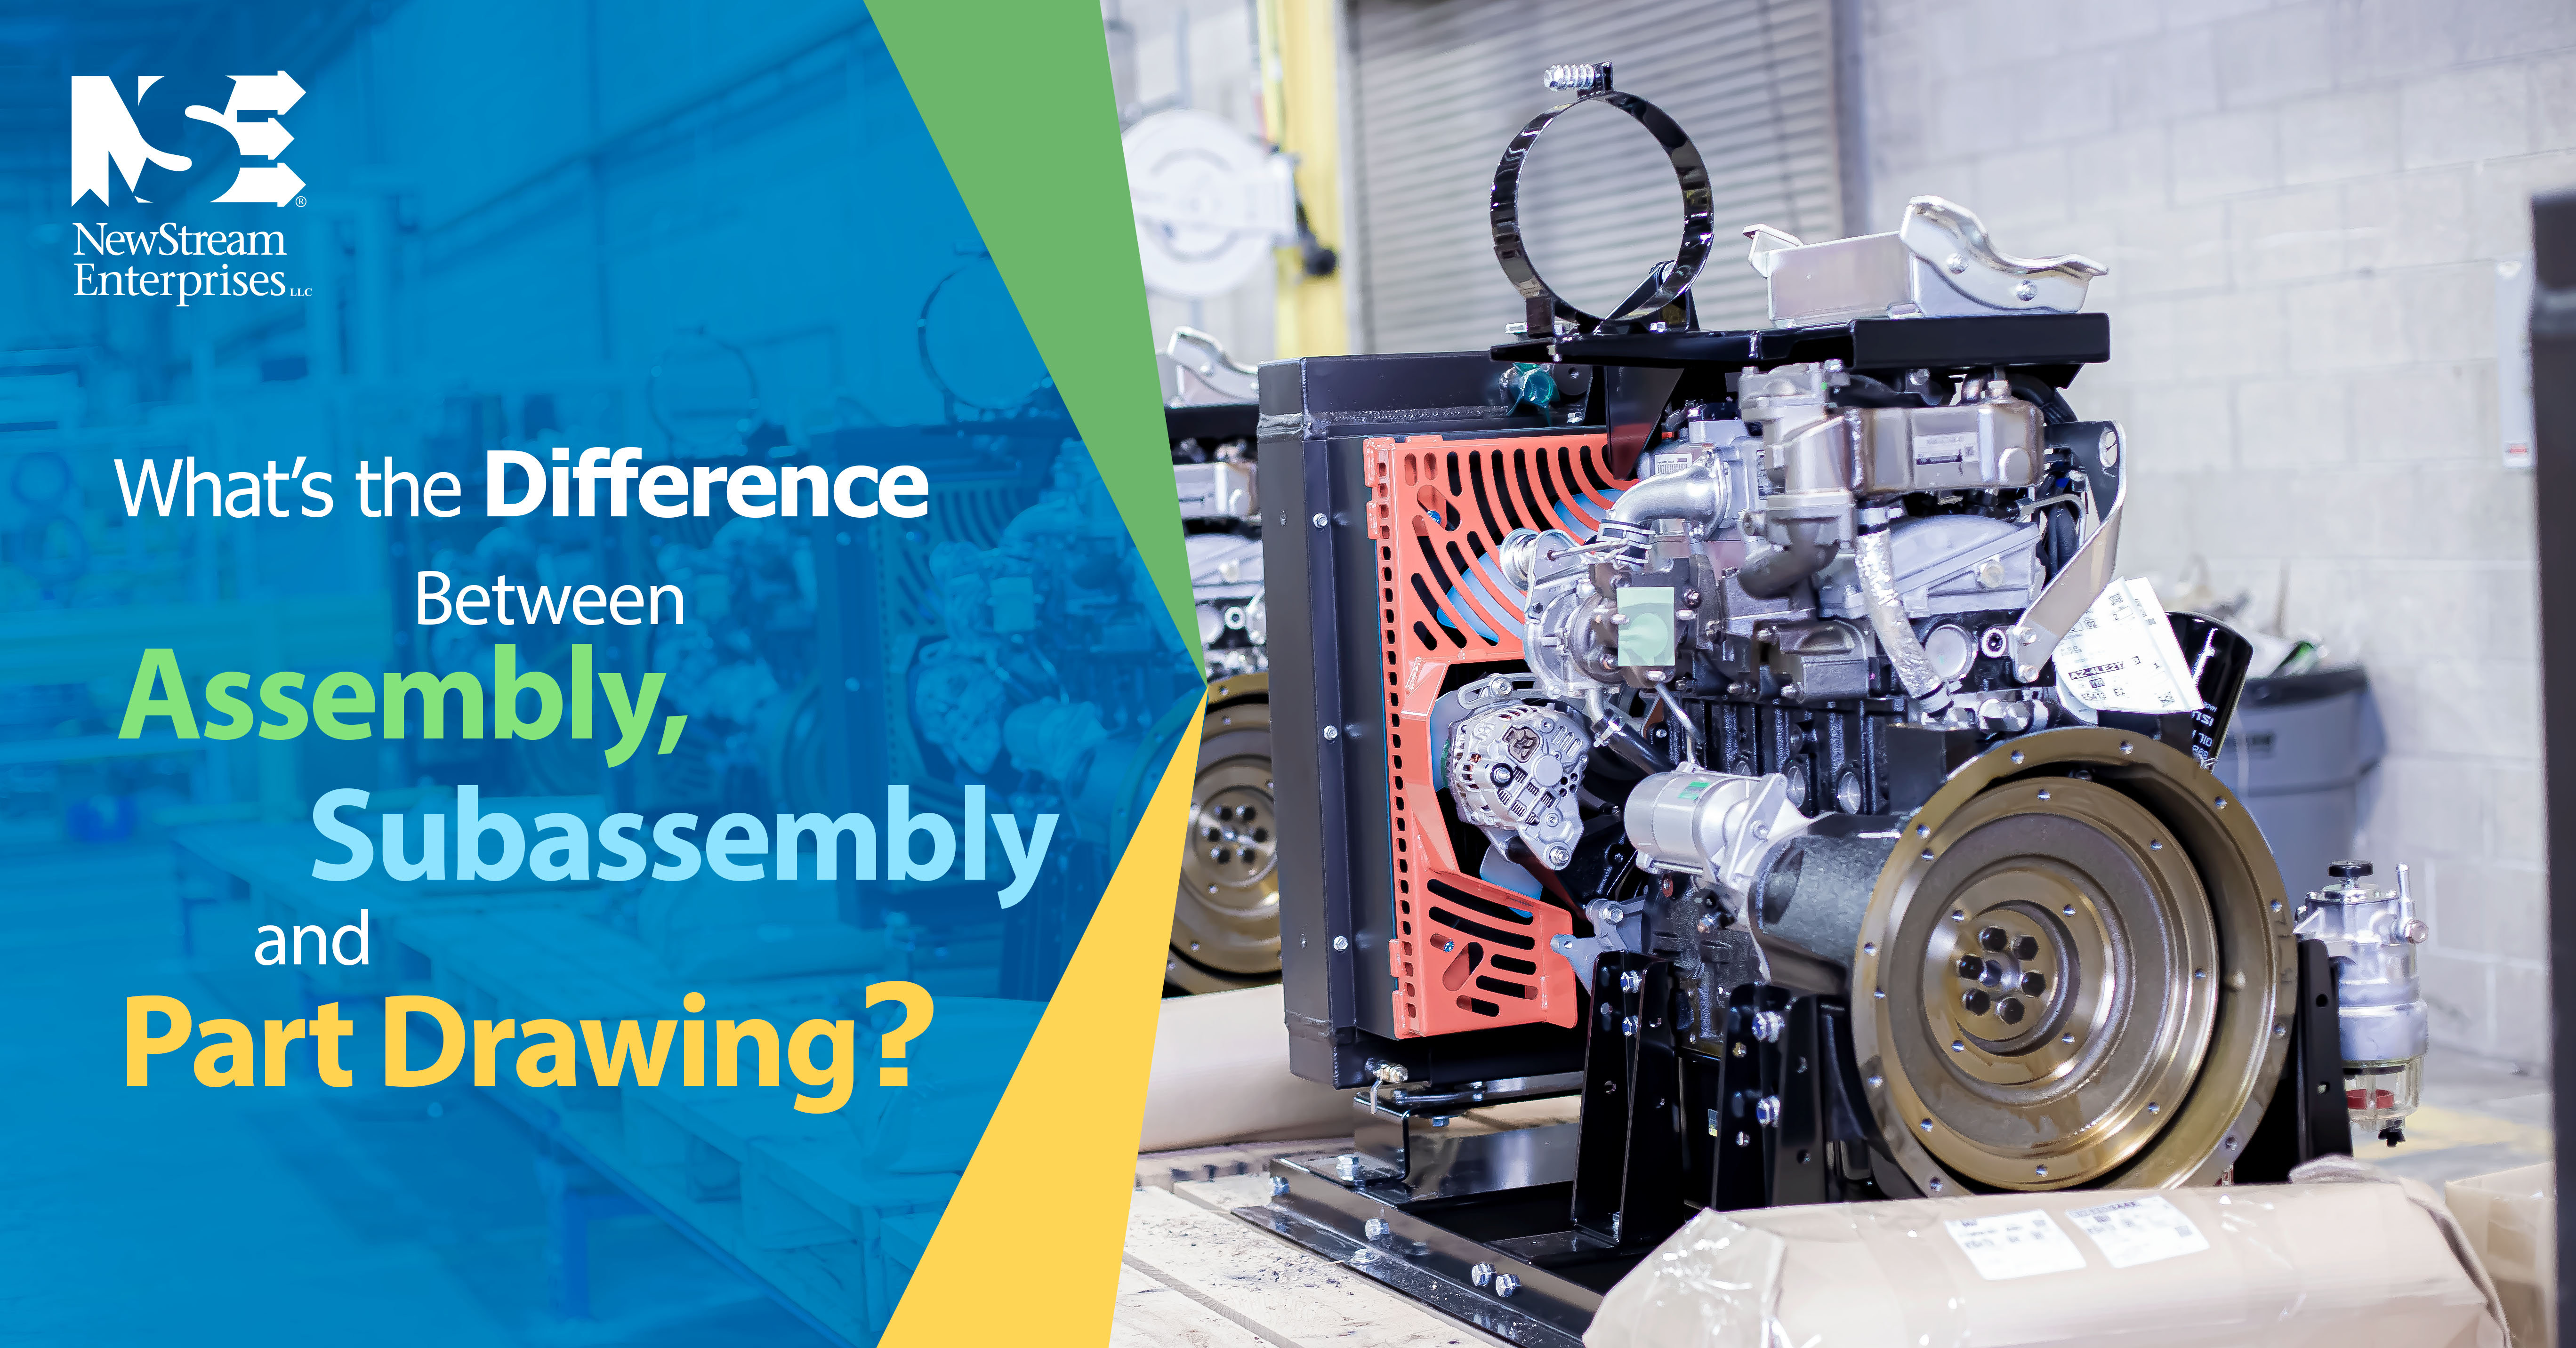 What is the difference between assembly subassembly and part drawing title graphic